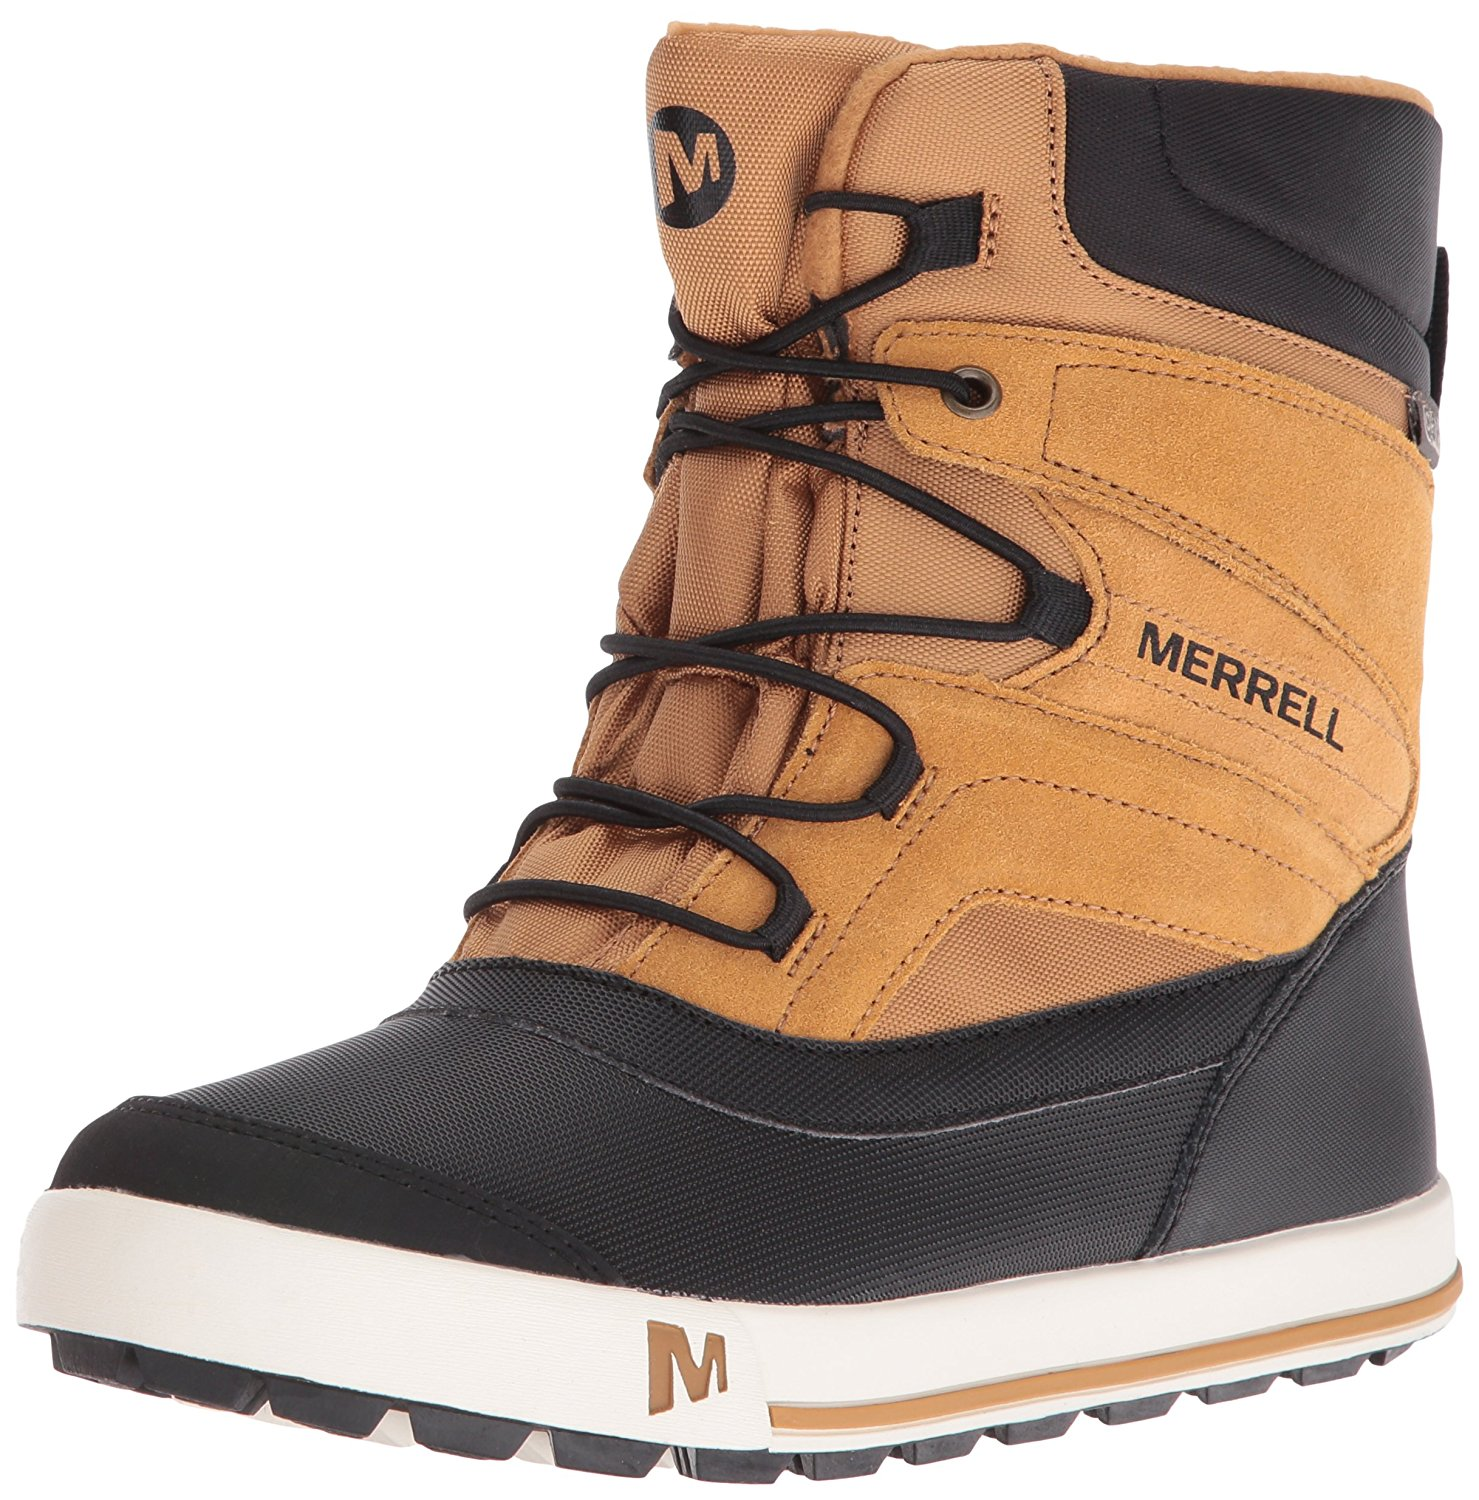 87032471 Cheap Merrell Snow Boot, find Merrell Snow Boot deals on line at ...